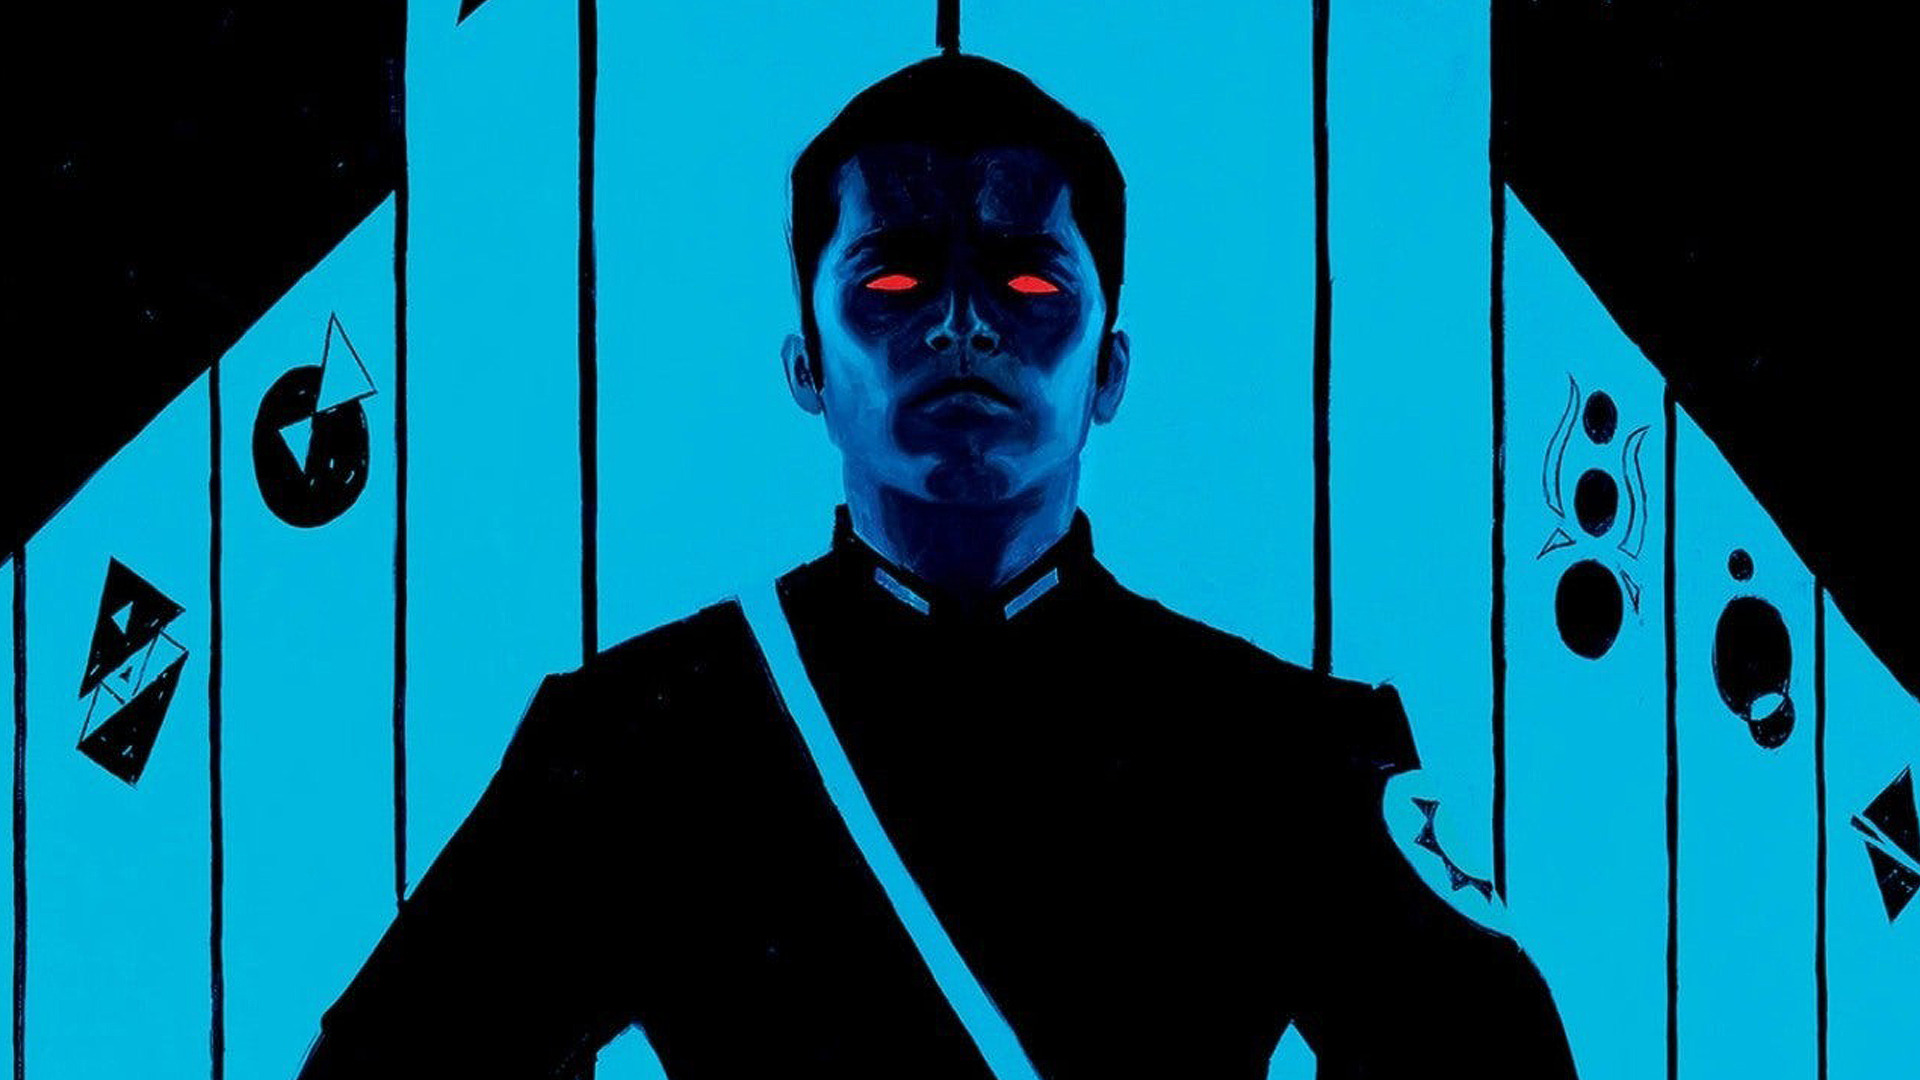 Comic book character with red glowing eyes on a black and blue background